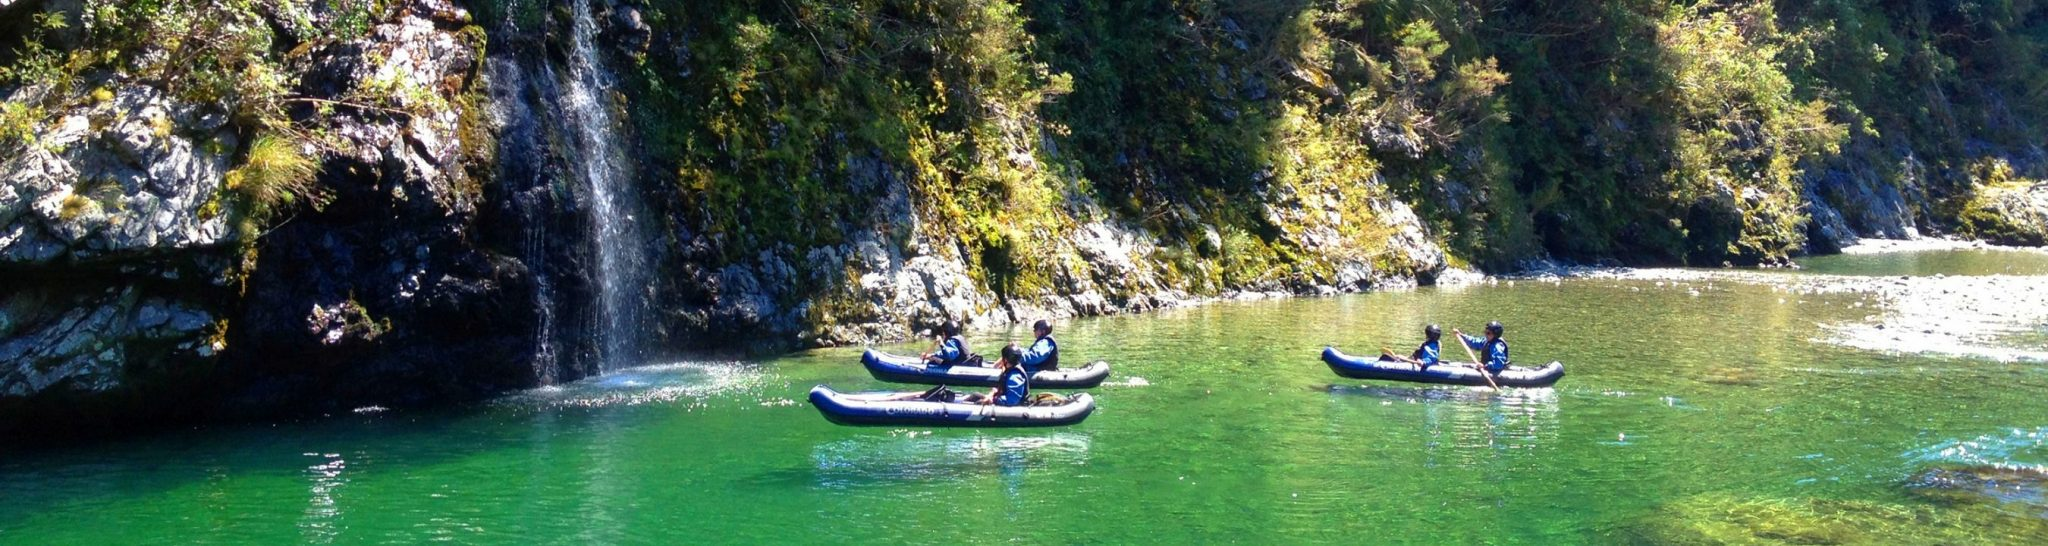 Hobbit Kayak Tour New Zealand Header